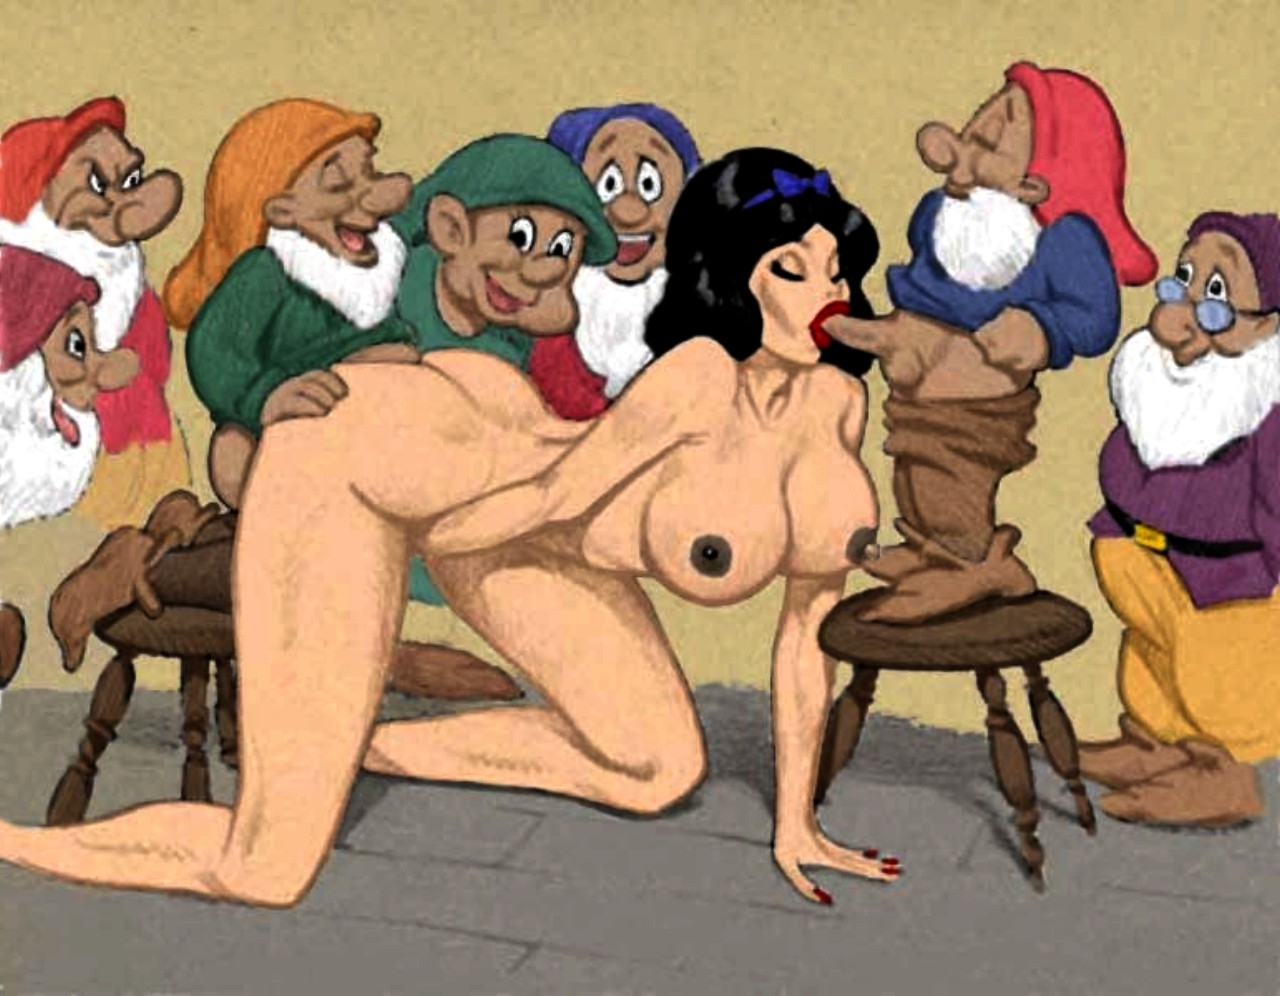 Snow white fucks seven dwarfs hentia gallery